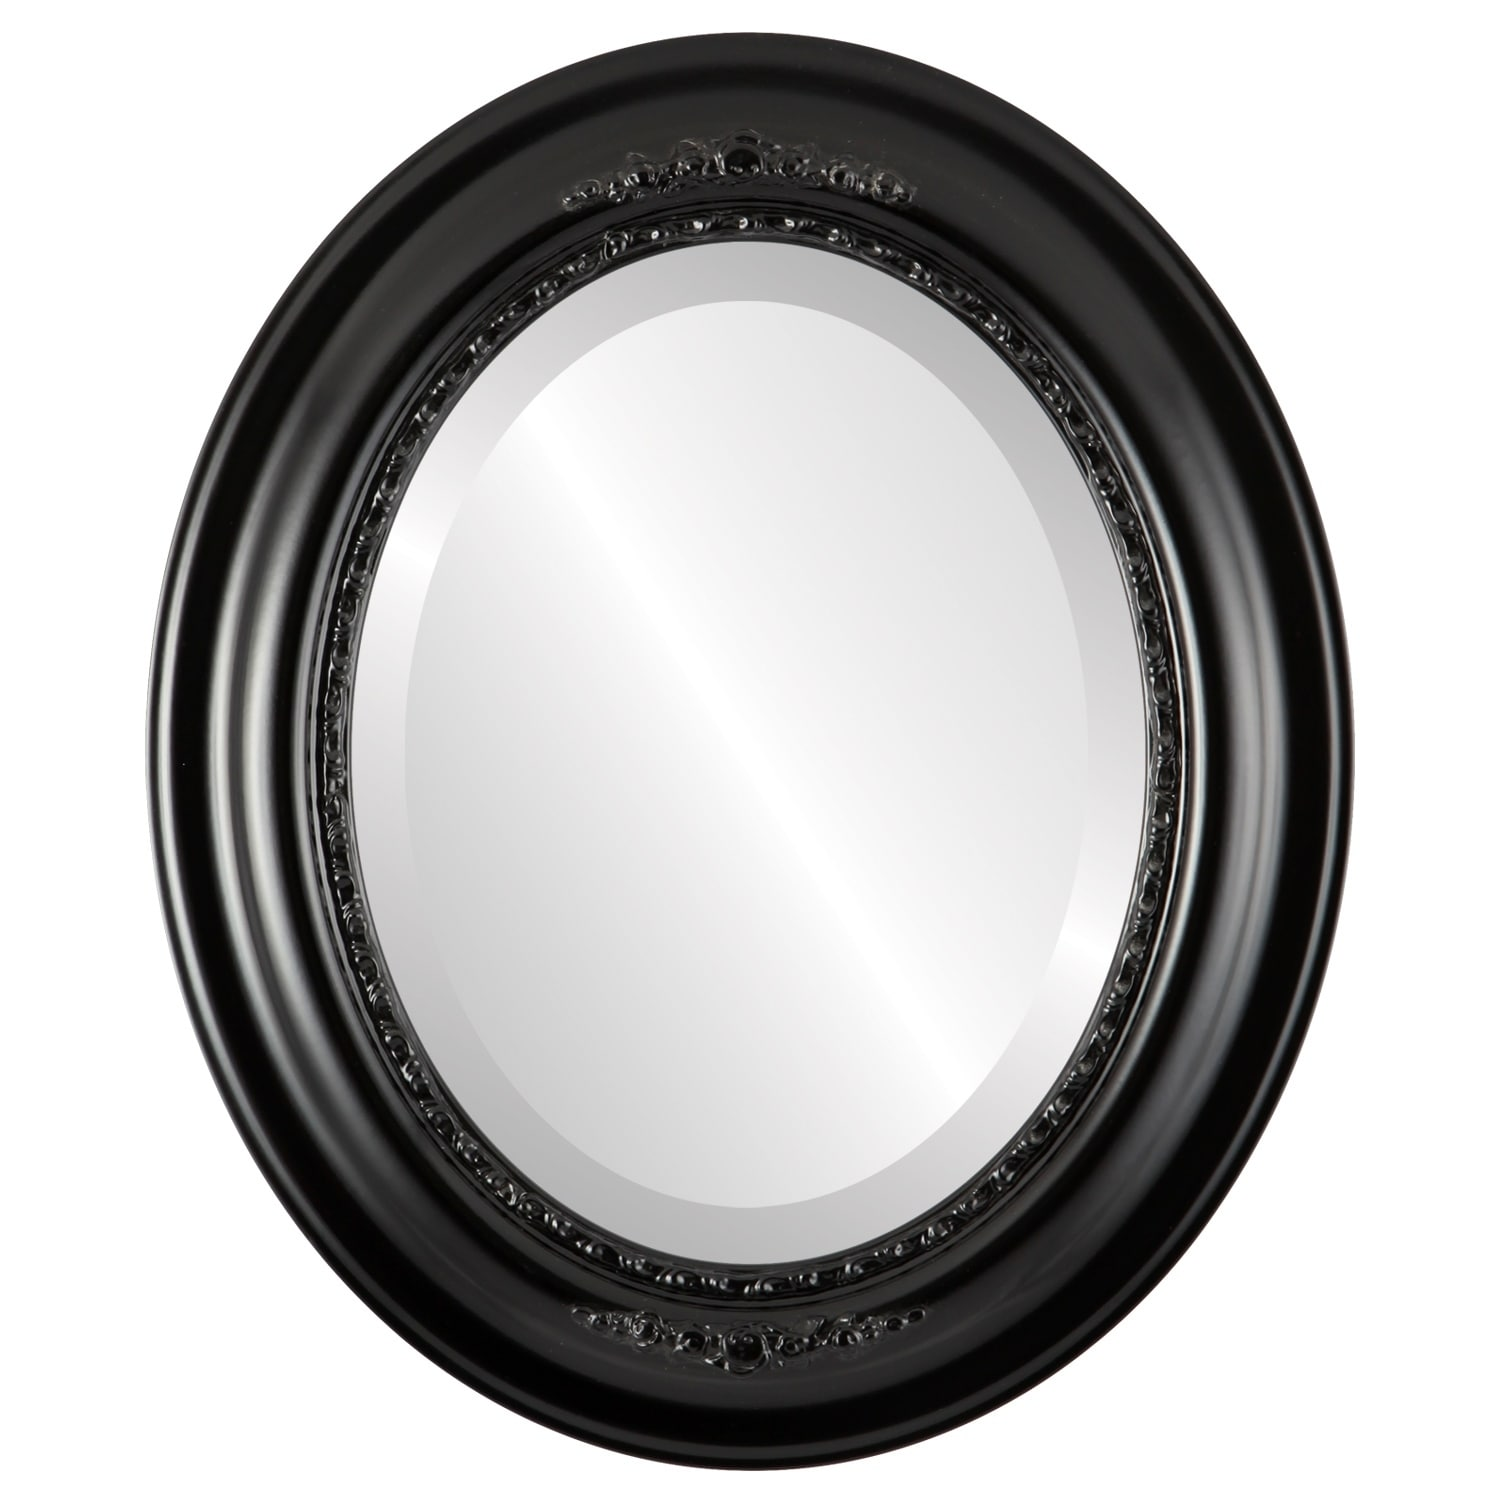 Boston Framed Oval Mirror in Matte Black (29x41 - Large (over 32 high))